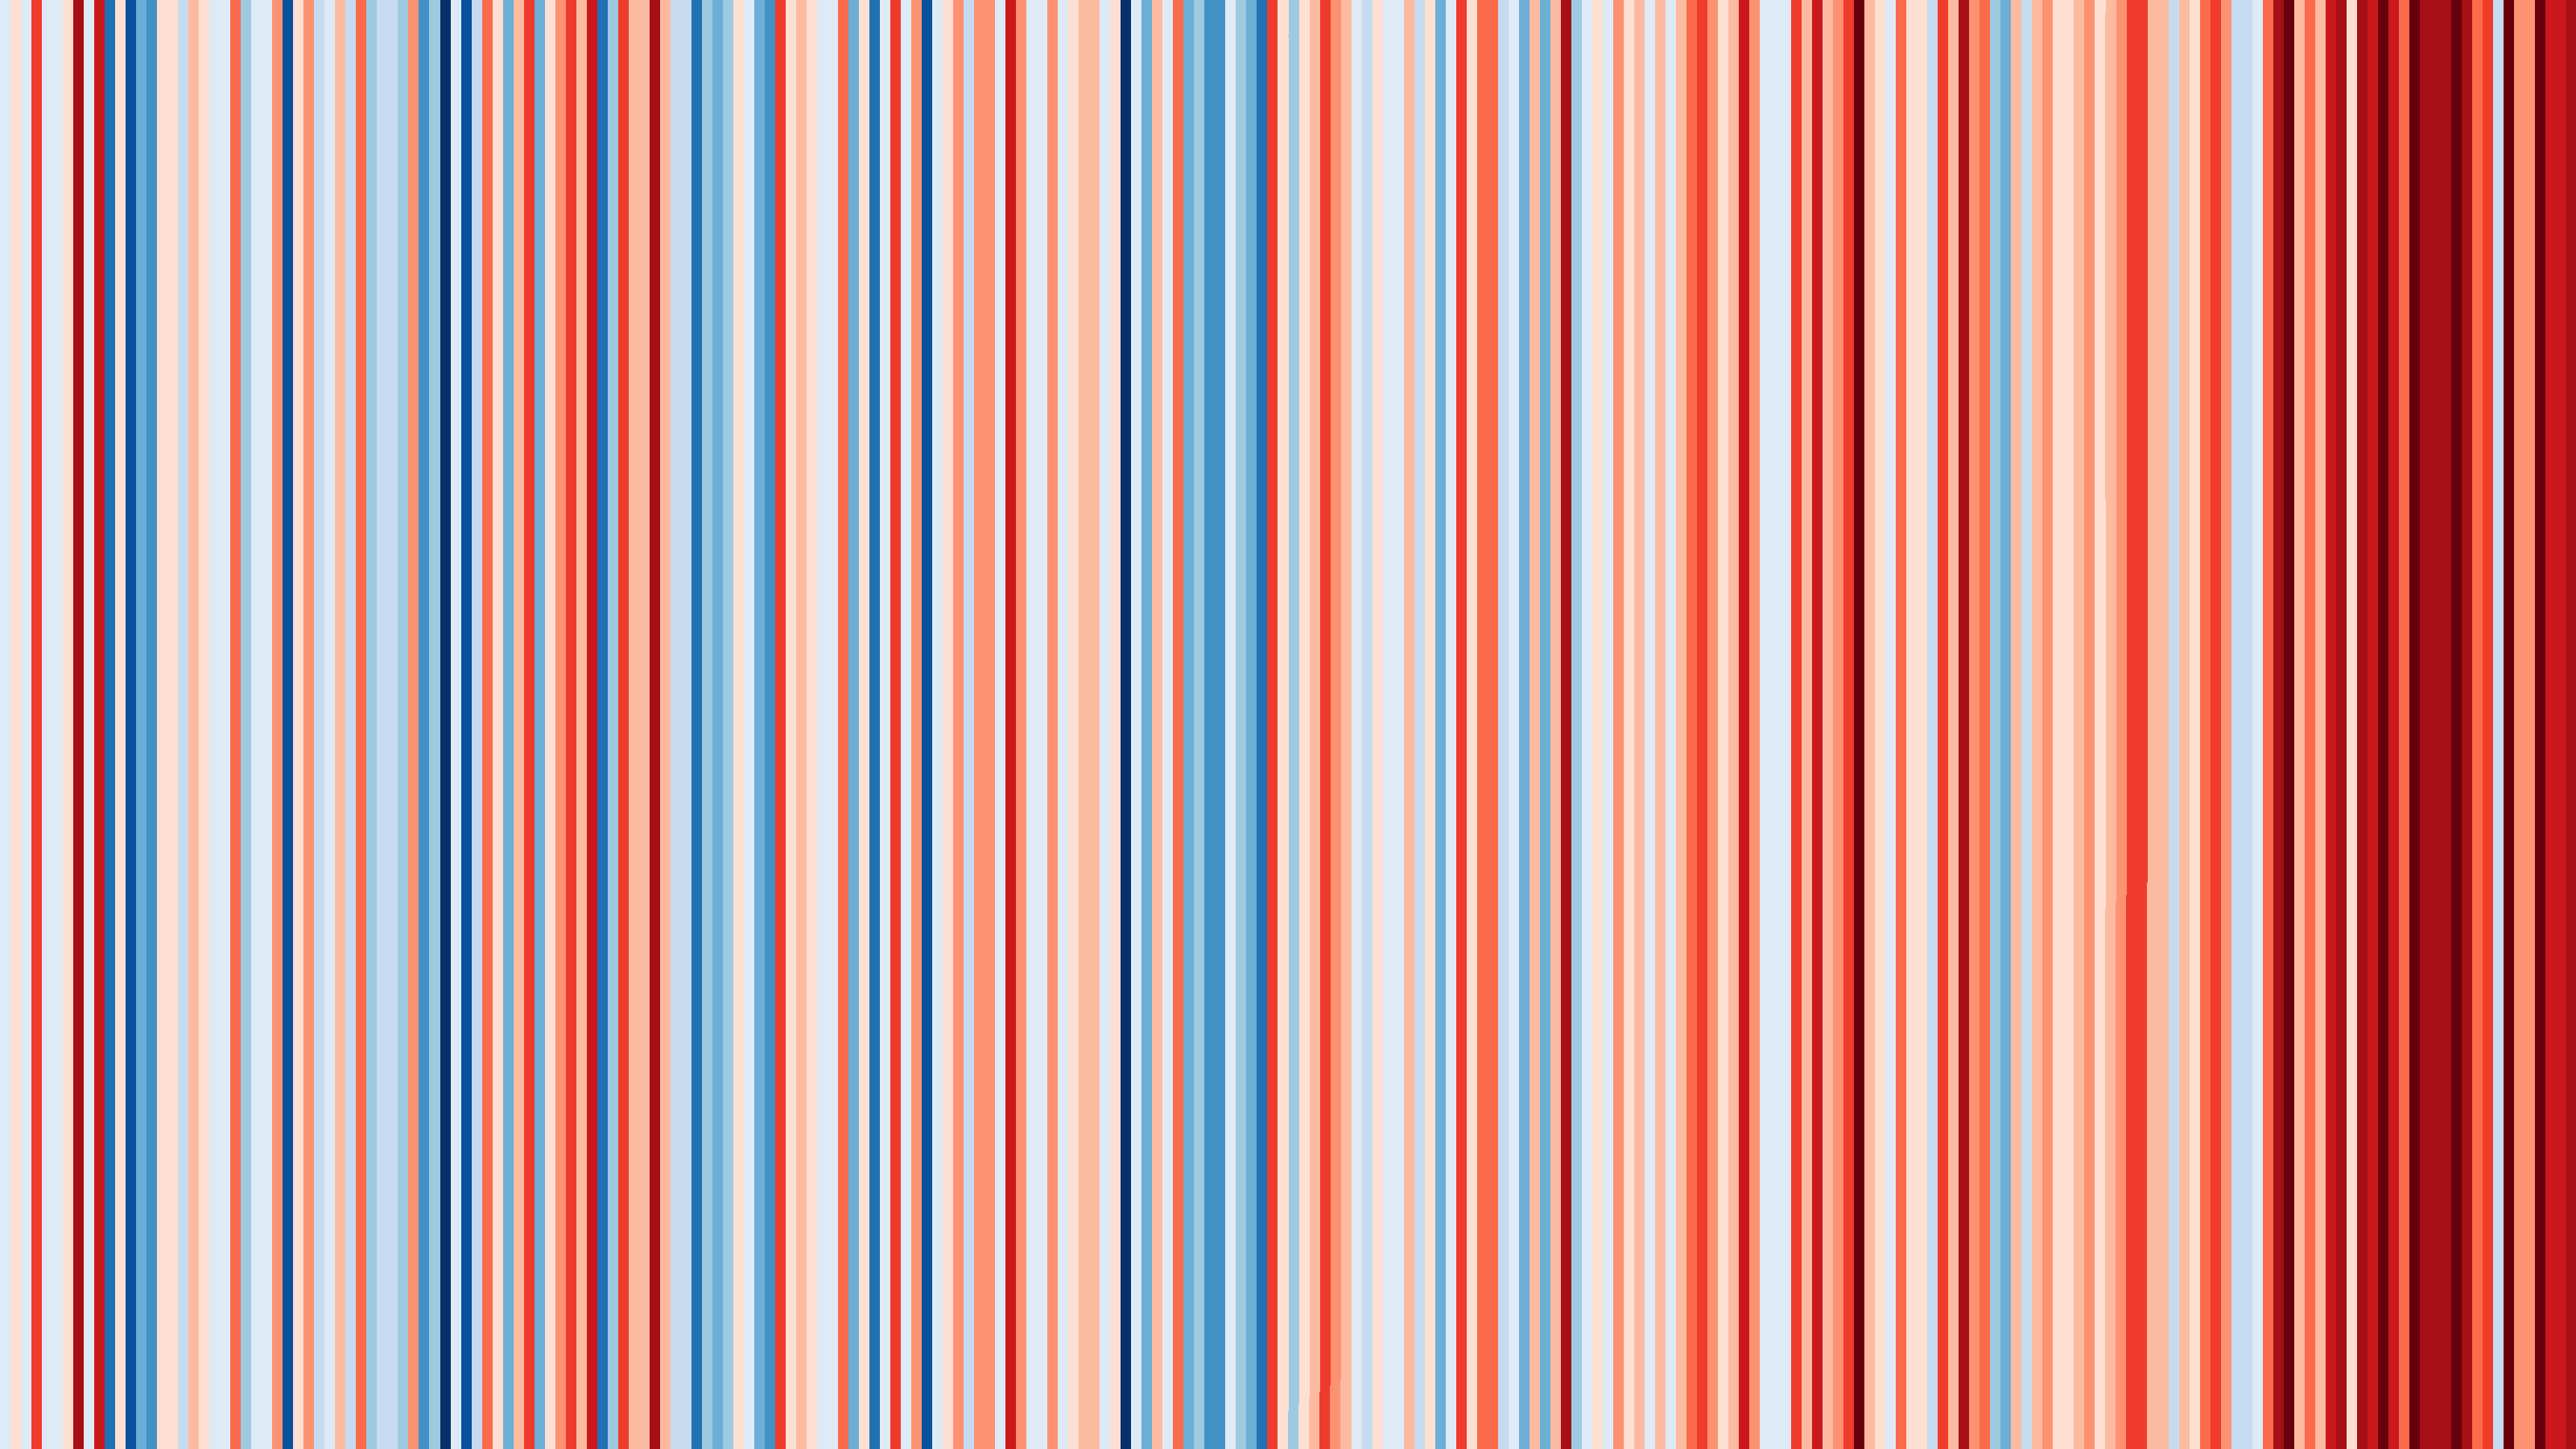 Climate change depicted as vertical stripes / Boing Boing